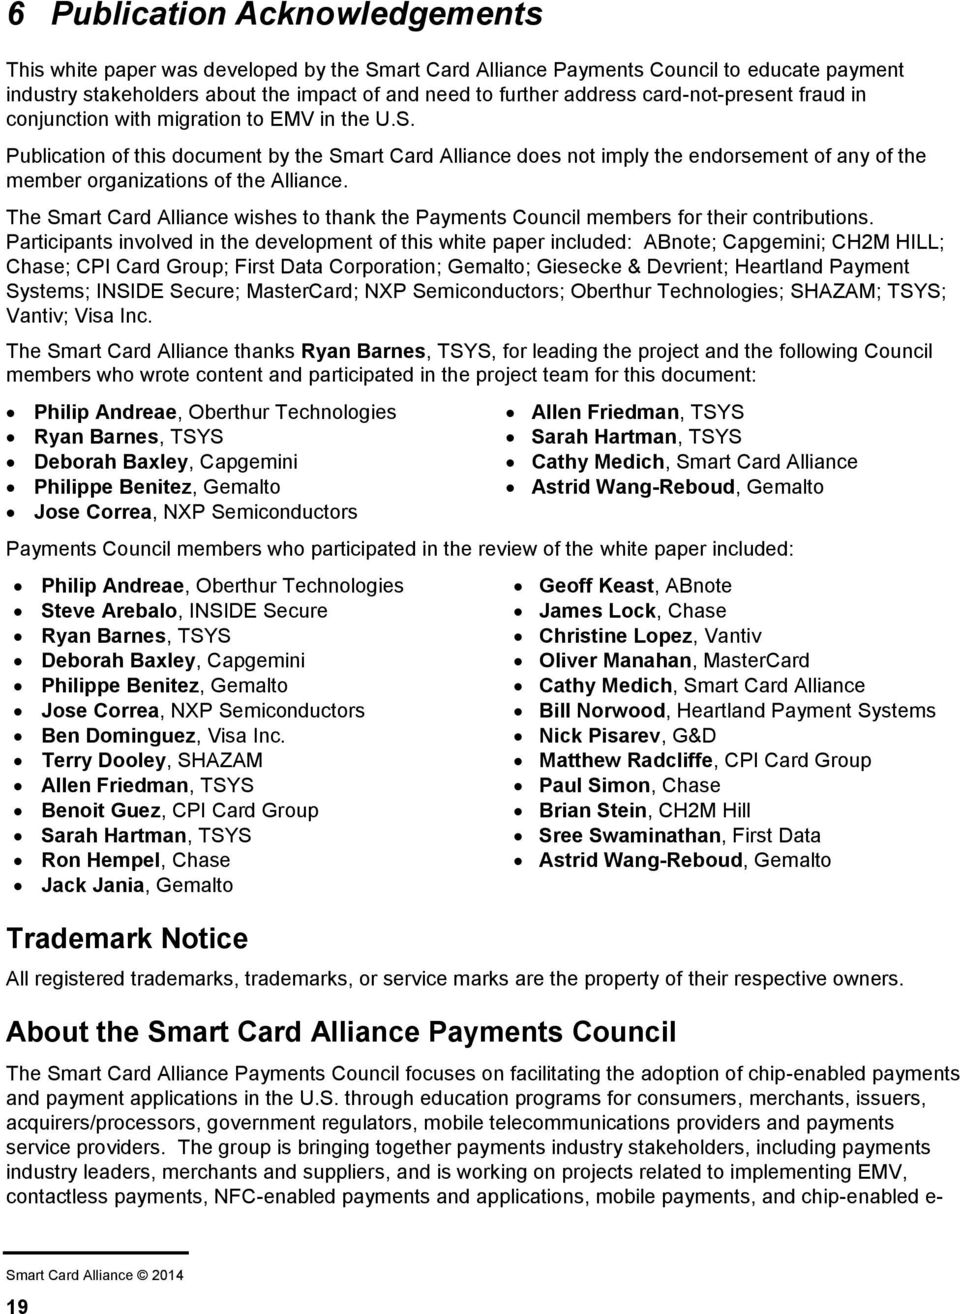 Publication of this document by the Smart Card Alliance does not imply the endorsement of any of the member organizations of the Alliance.